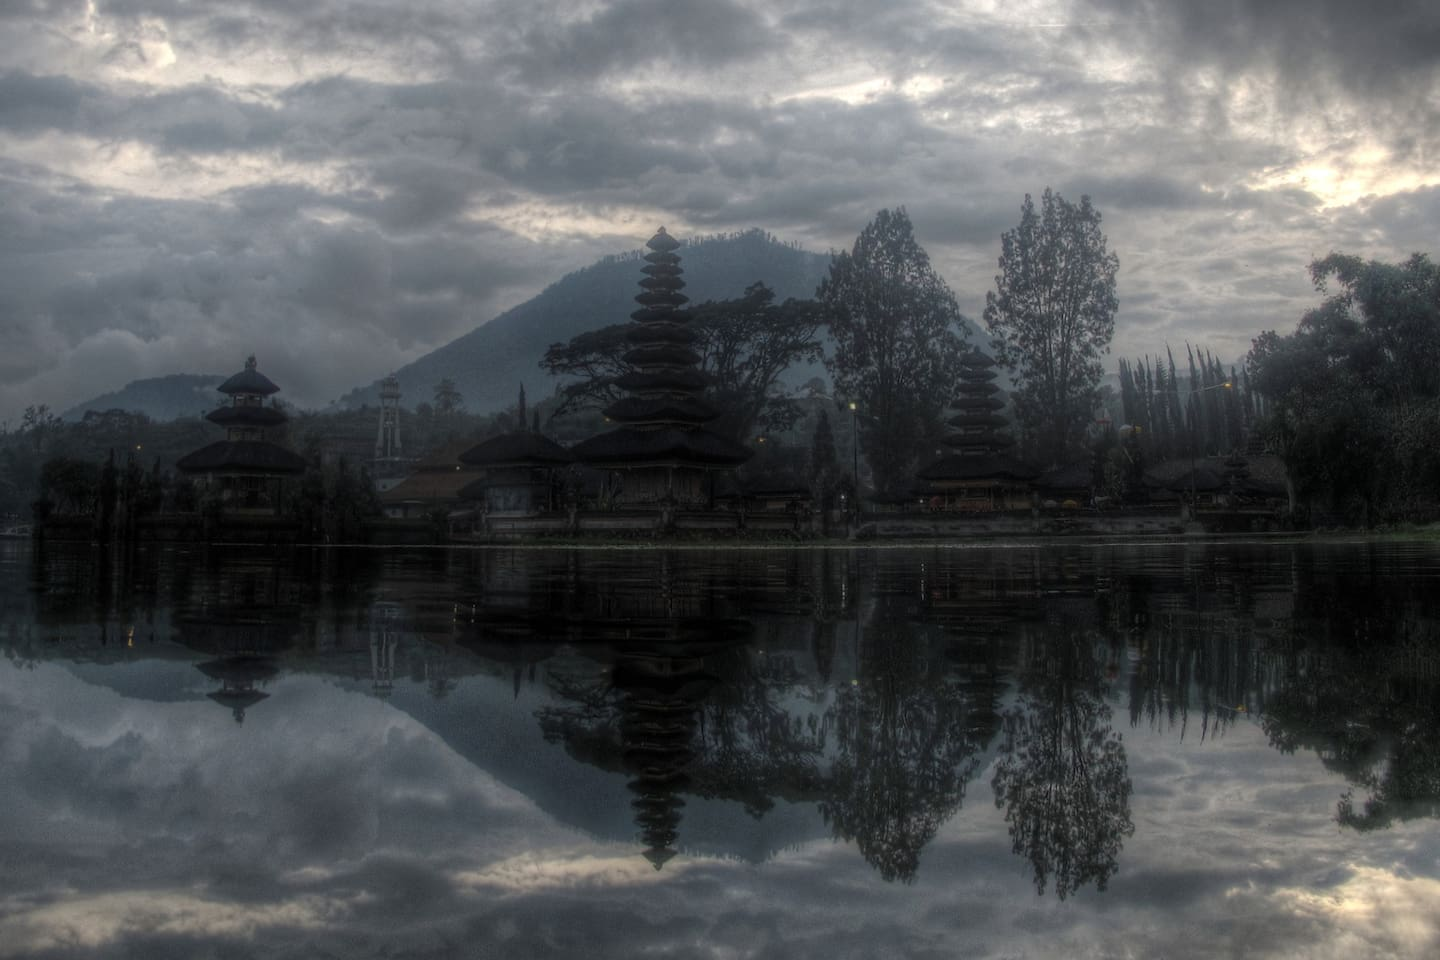 Our place is about 12 km drive from Bedugul with Bali's most photographed Ulun Danu temple